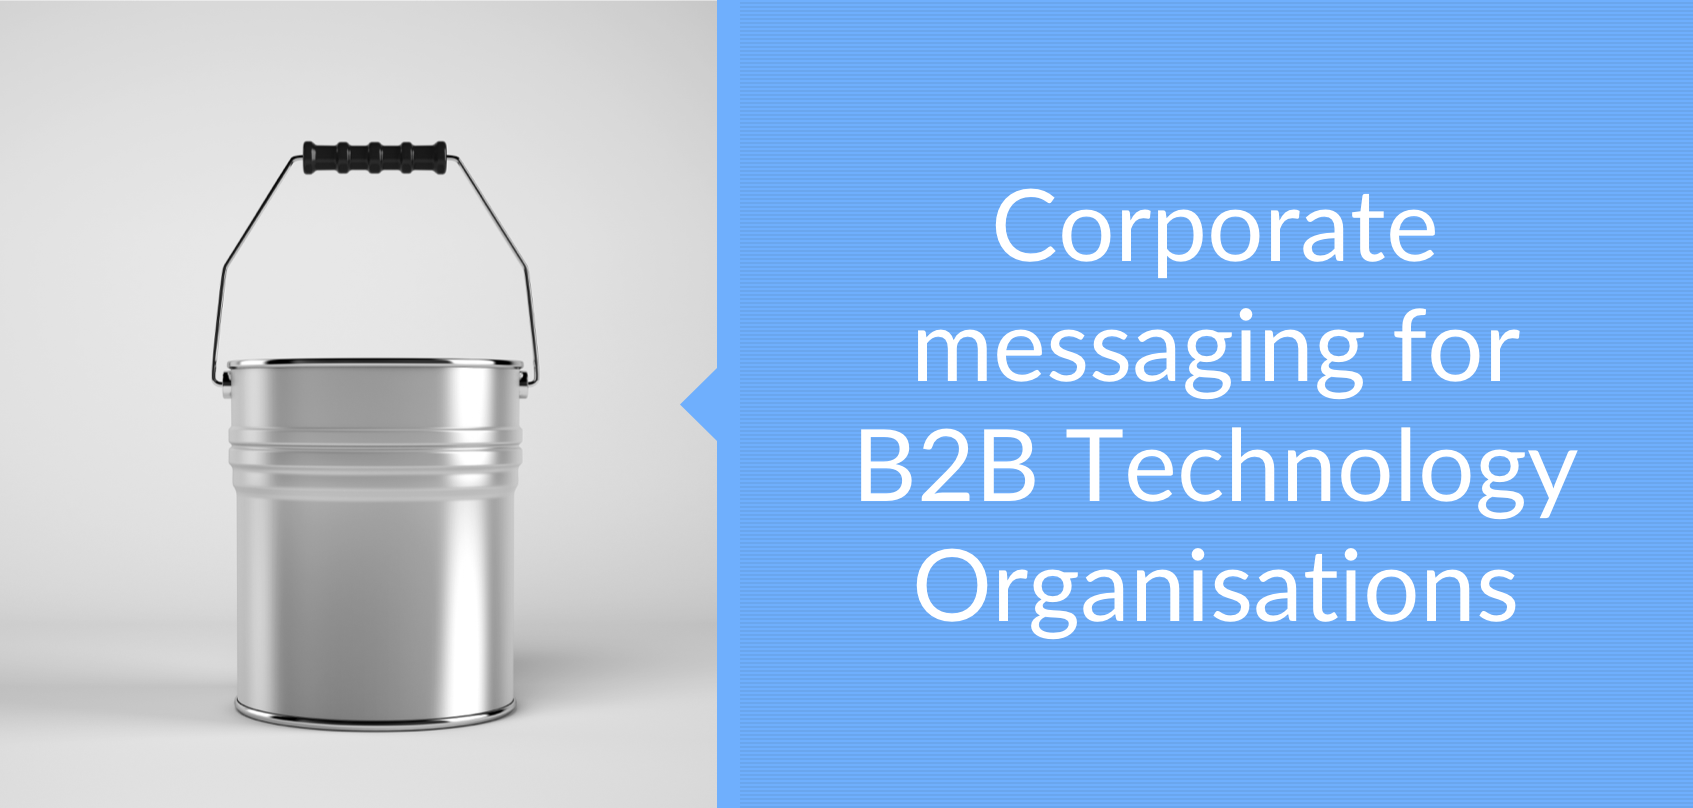 Corporate messaging for B2B Technology Organisations